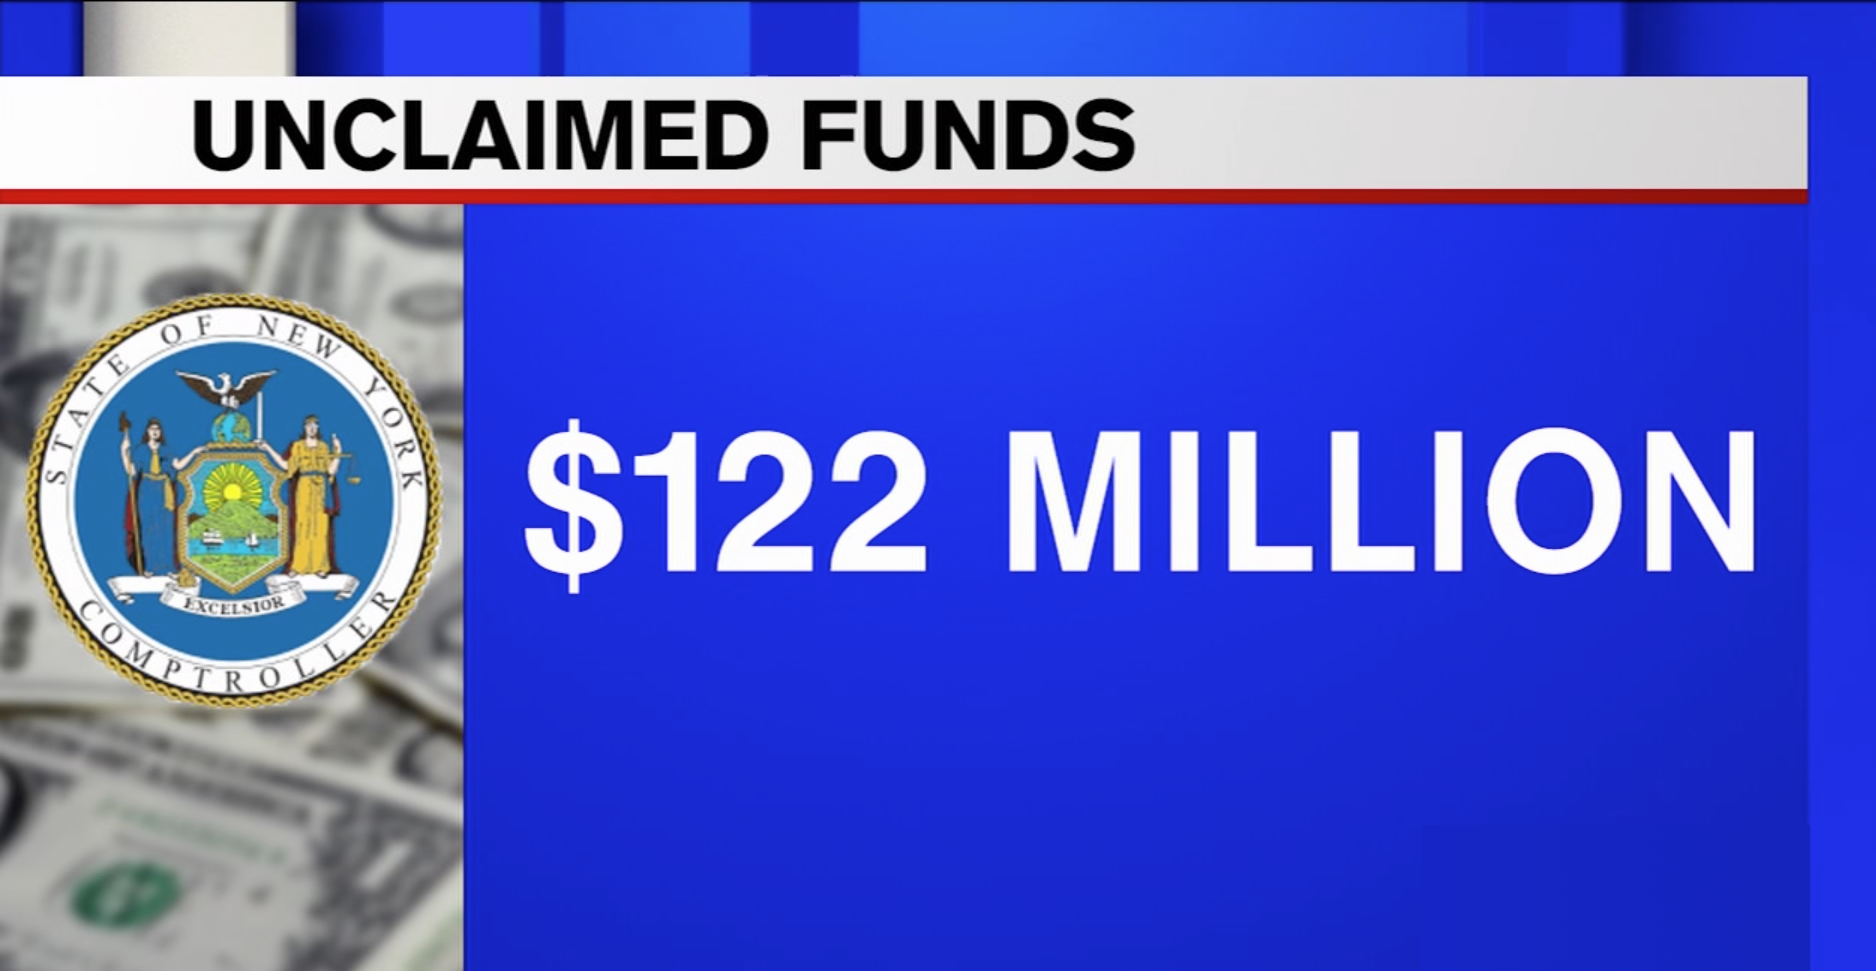 CHECK NOW: New York owes residents millions in unclaimed funds - Local Records Office